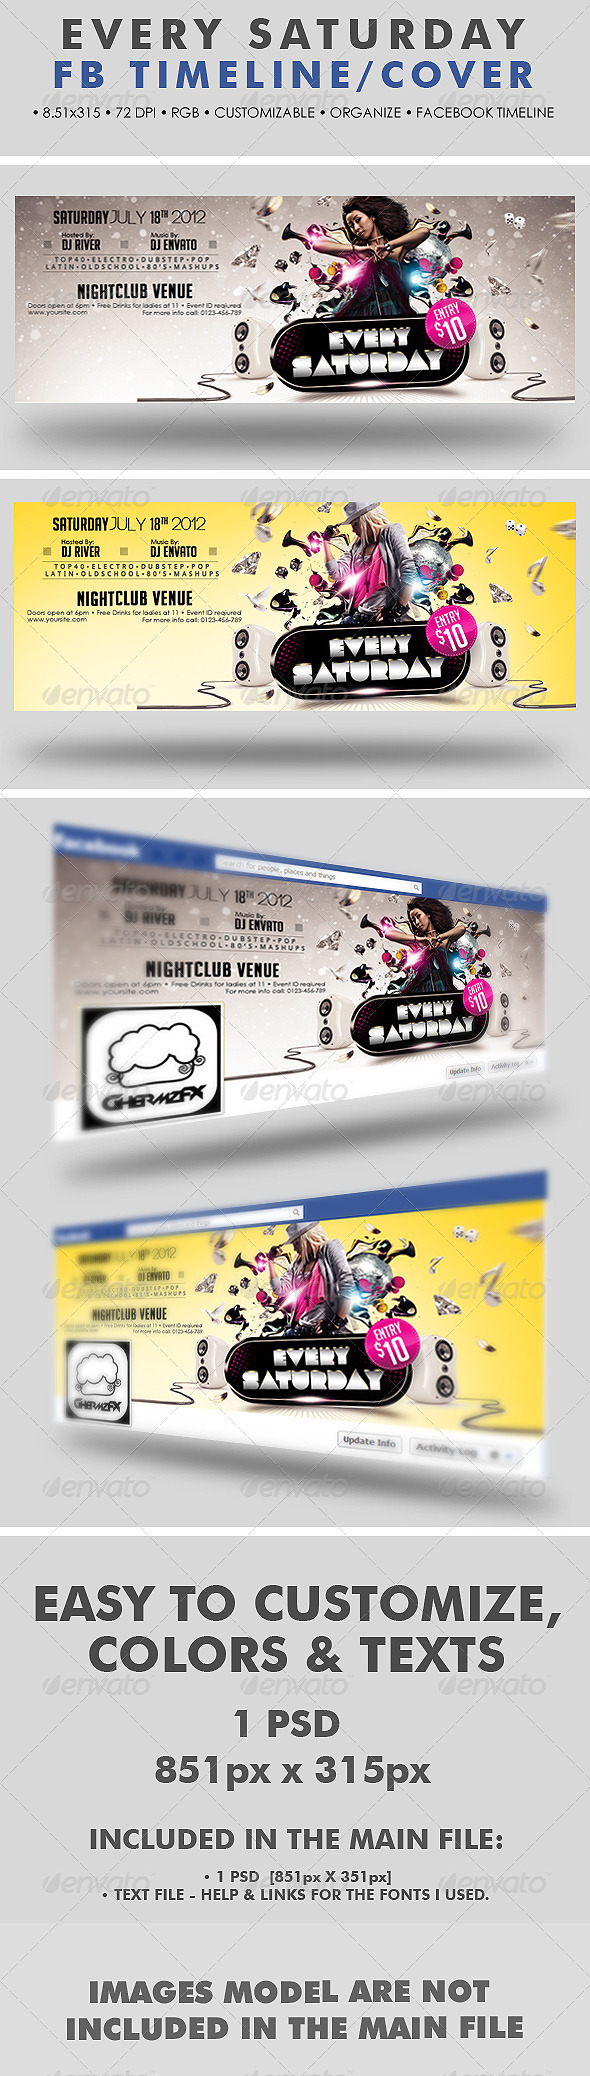 GraphicRiver Every Saturday Facebook Timeline Cover 2575457